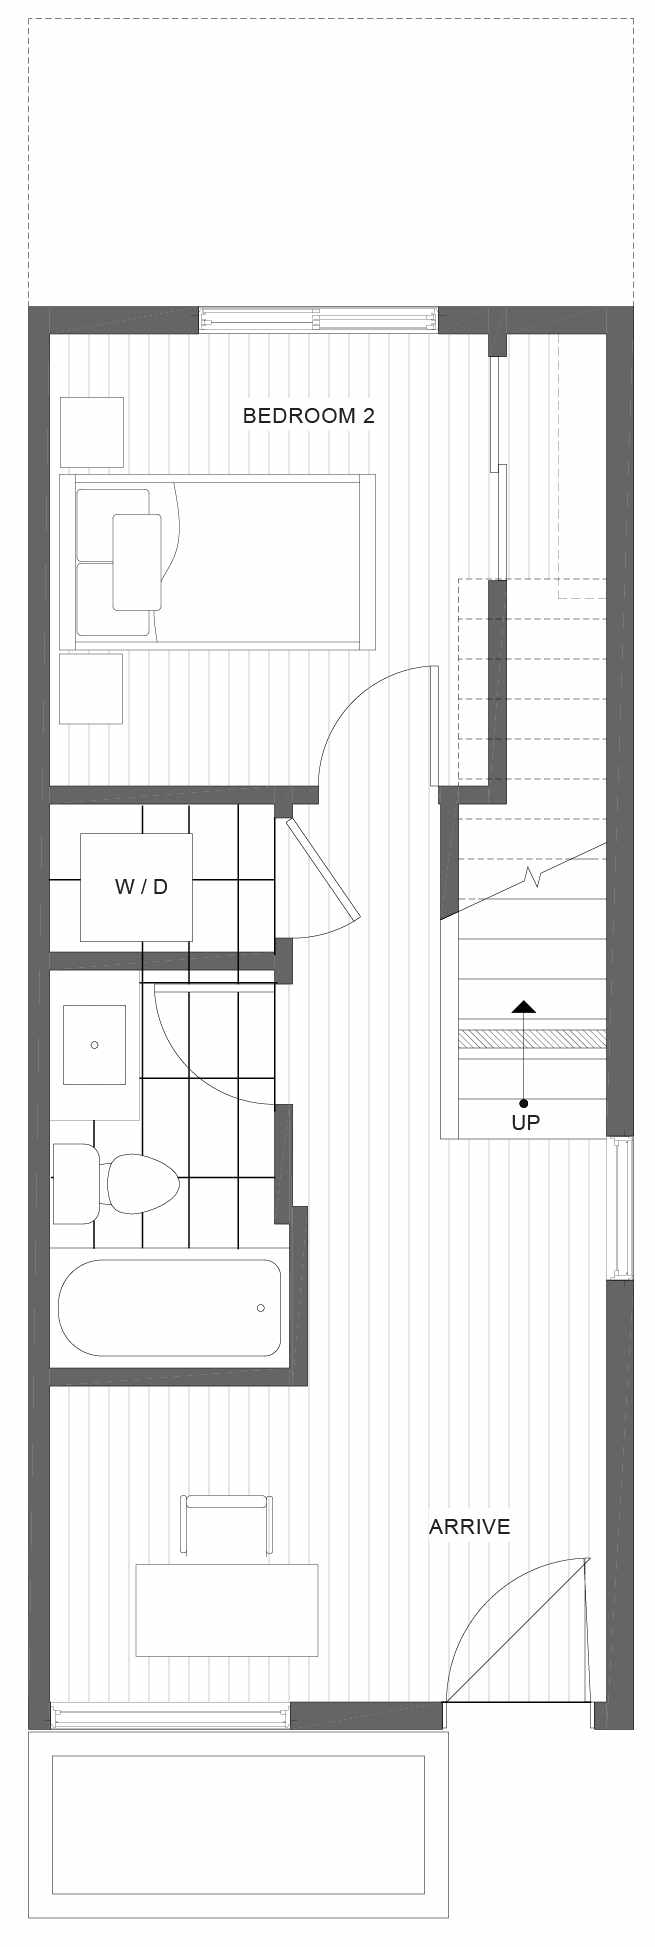 First Floor Plan of 1330 E Spring St of the Corazon II Townhomes